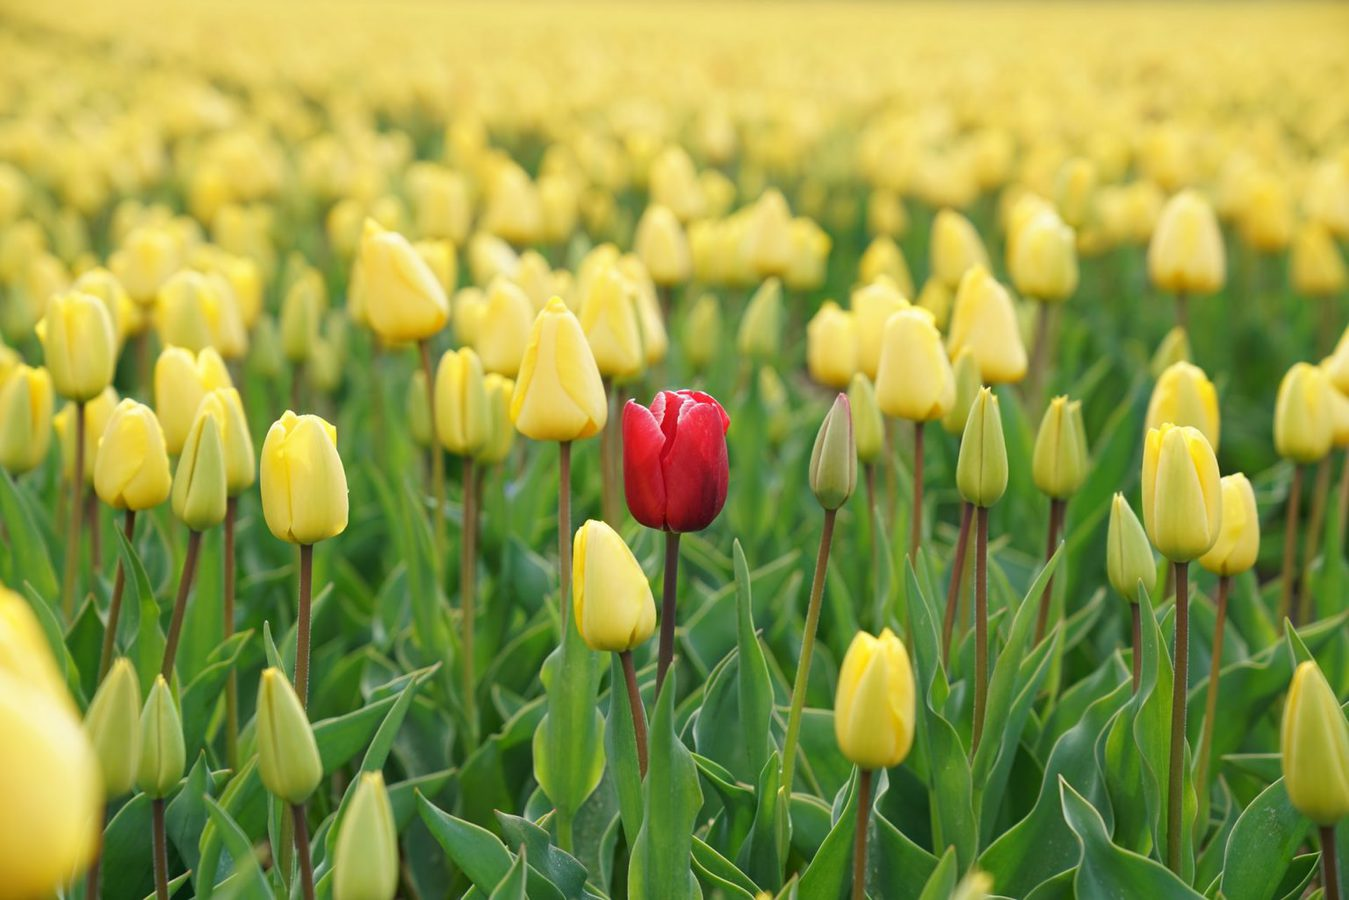 A red tulip in the middle of a field of yellow tulips